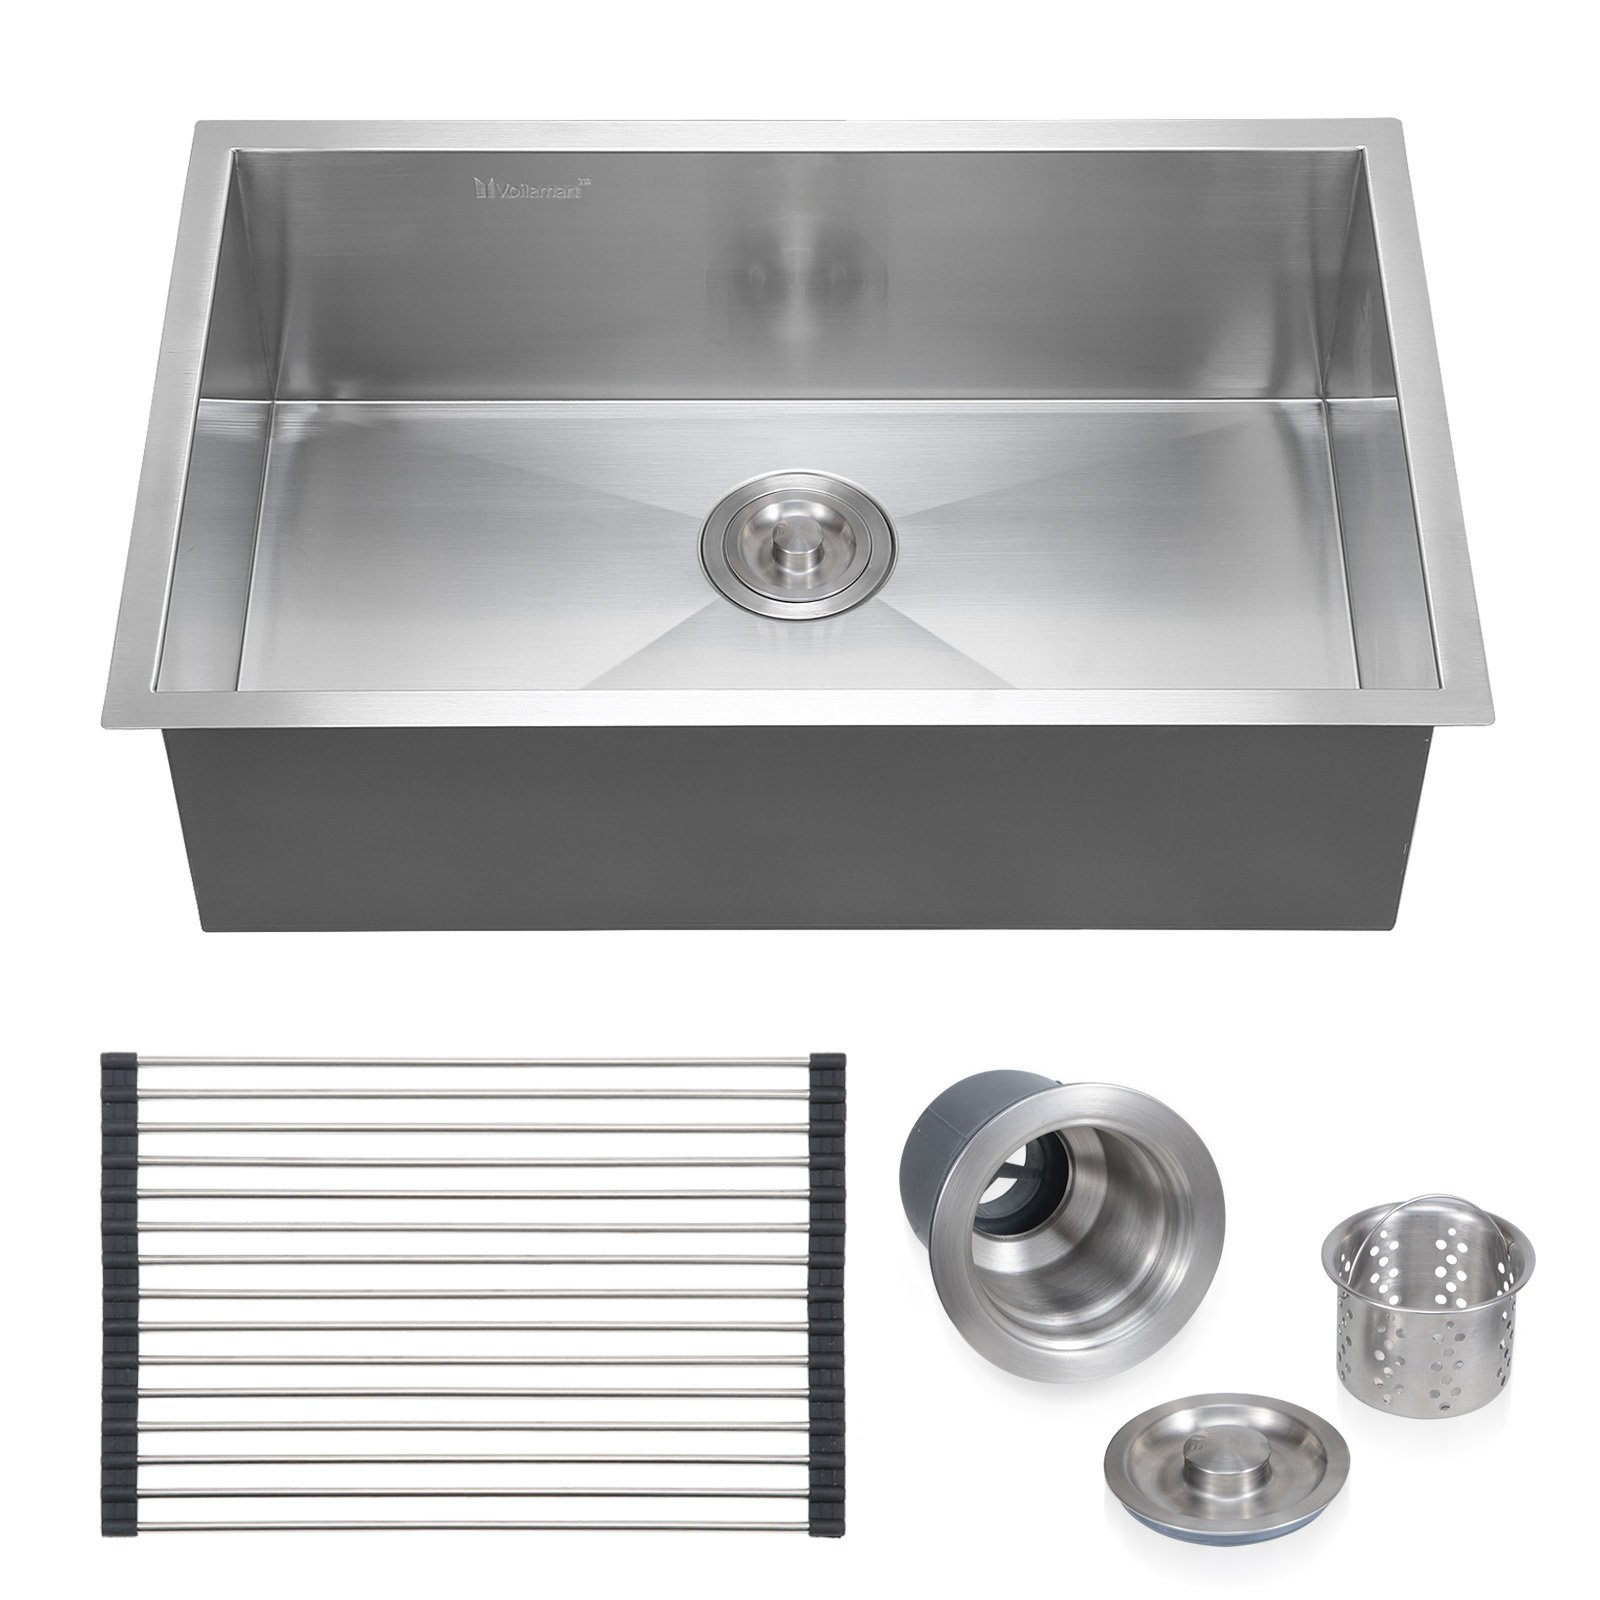 Voilamart 28'' x 18'' Single Bowl Handmade Stainless Steel Kitchen Sink 18 Gauge - Undermount Topmount Flushmount